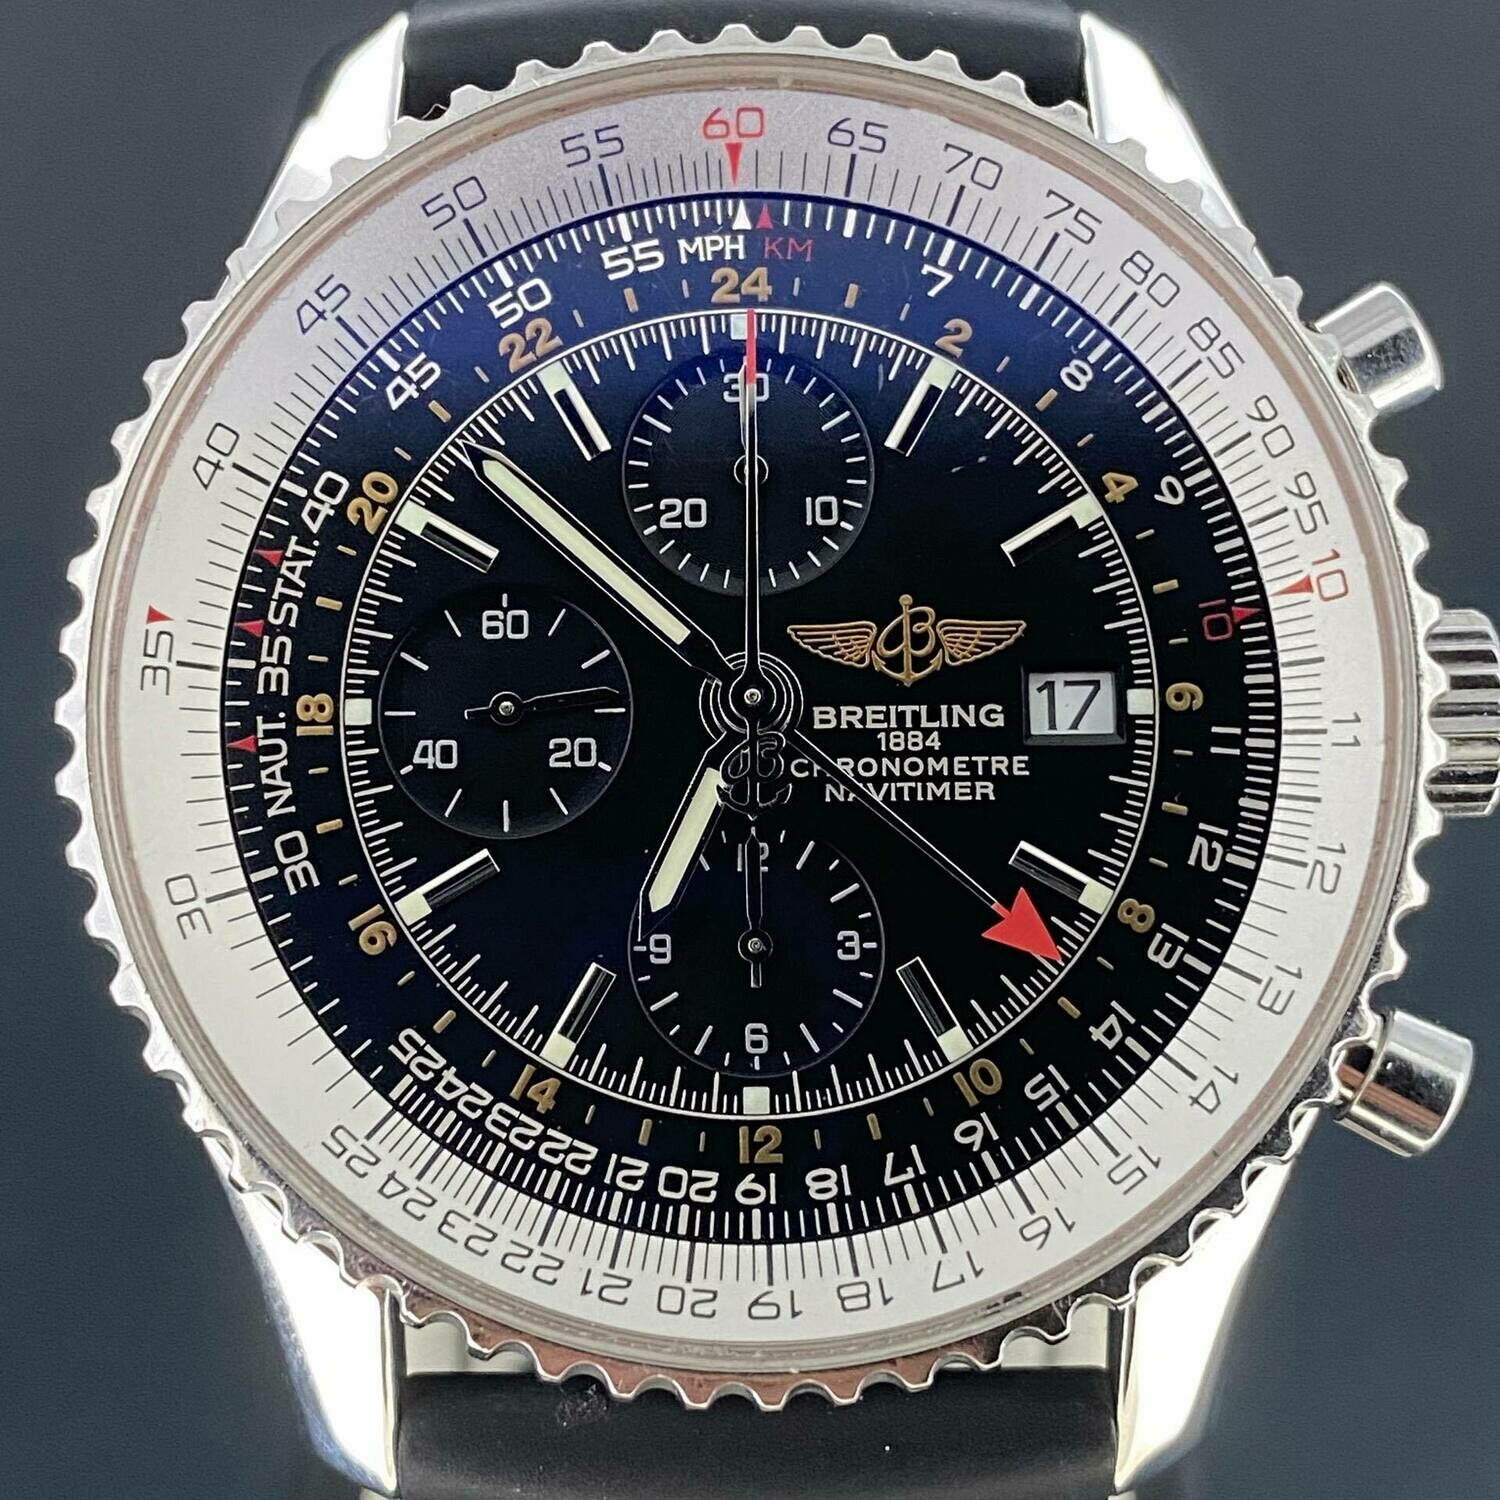 Breitling Navitimer World Chronograph Steel Black Dial Rubber Strap B&P2012 Mint Condition